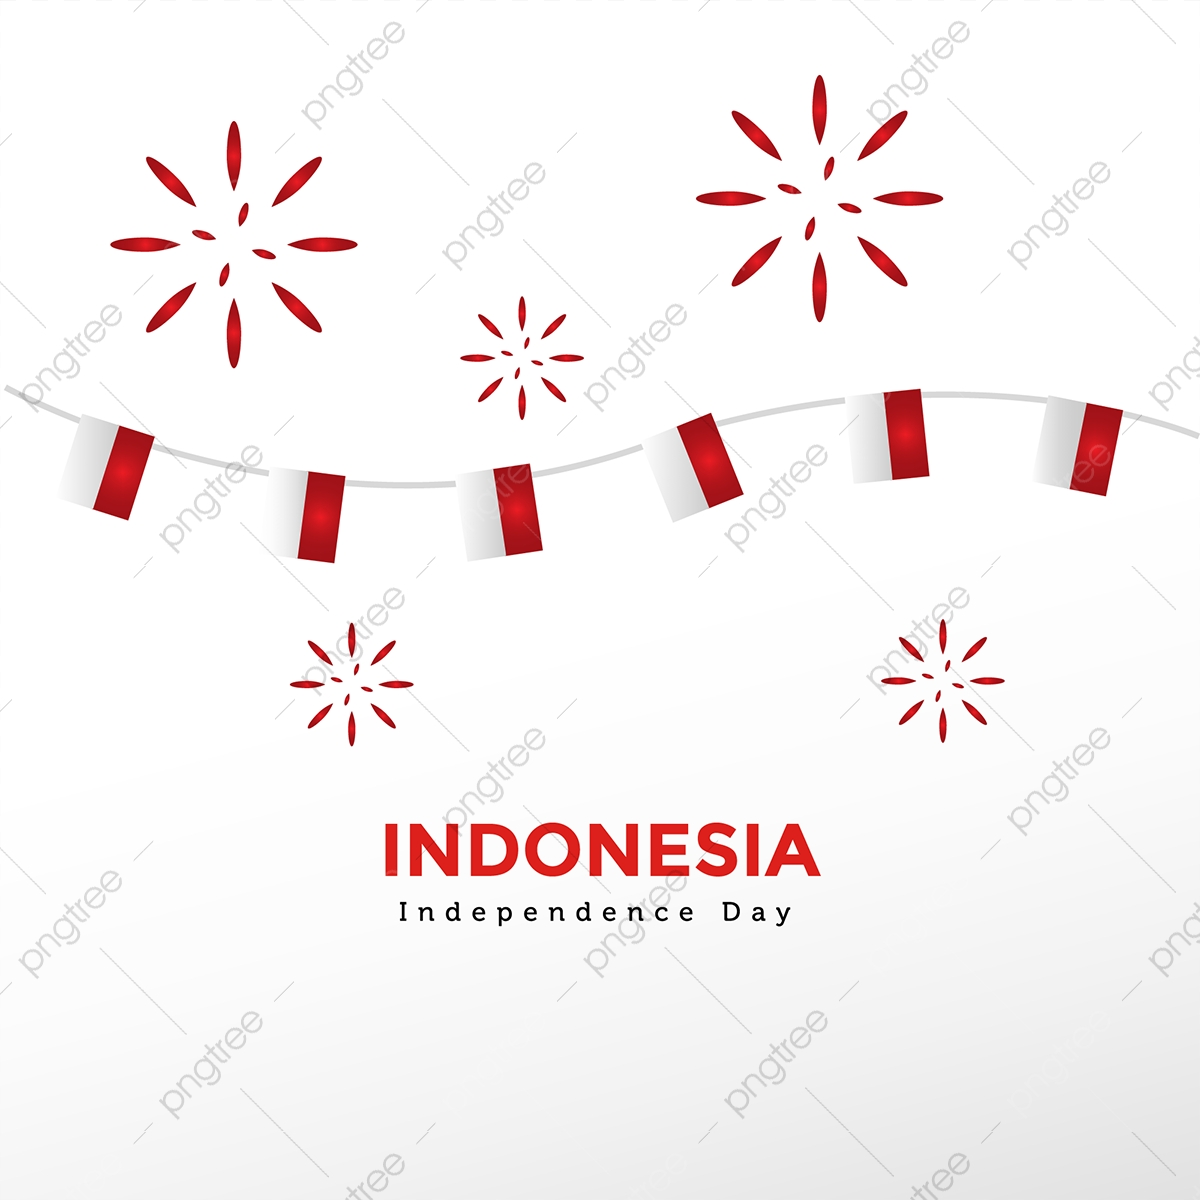 indonesia independence day with conffeti day icons indonesia day png transparent clipart image and psd file for free download https pngtree com freepng indonesia independence day with conffeti 4860396 html